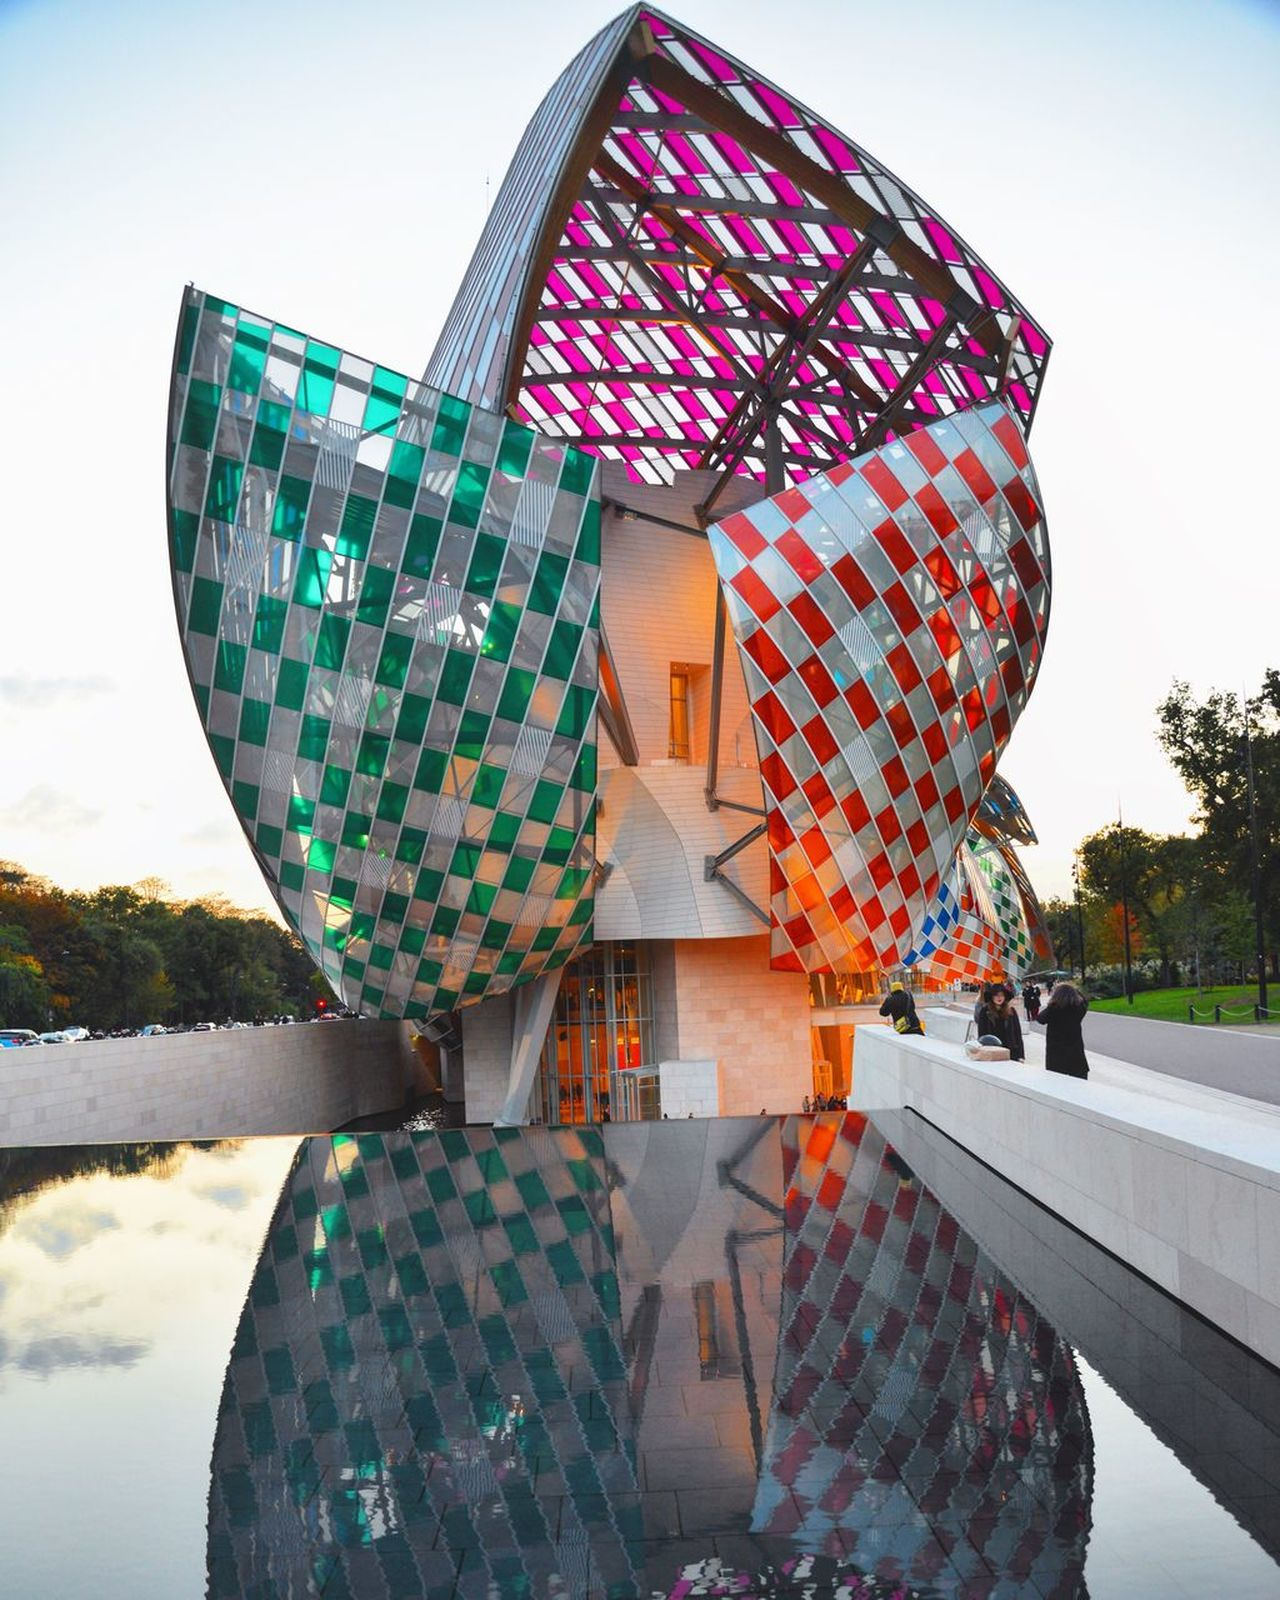 The Gehry's art Louis Vuitton Gehry Exposition Paris